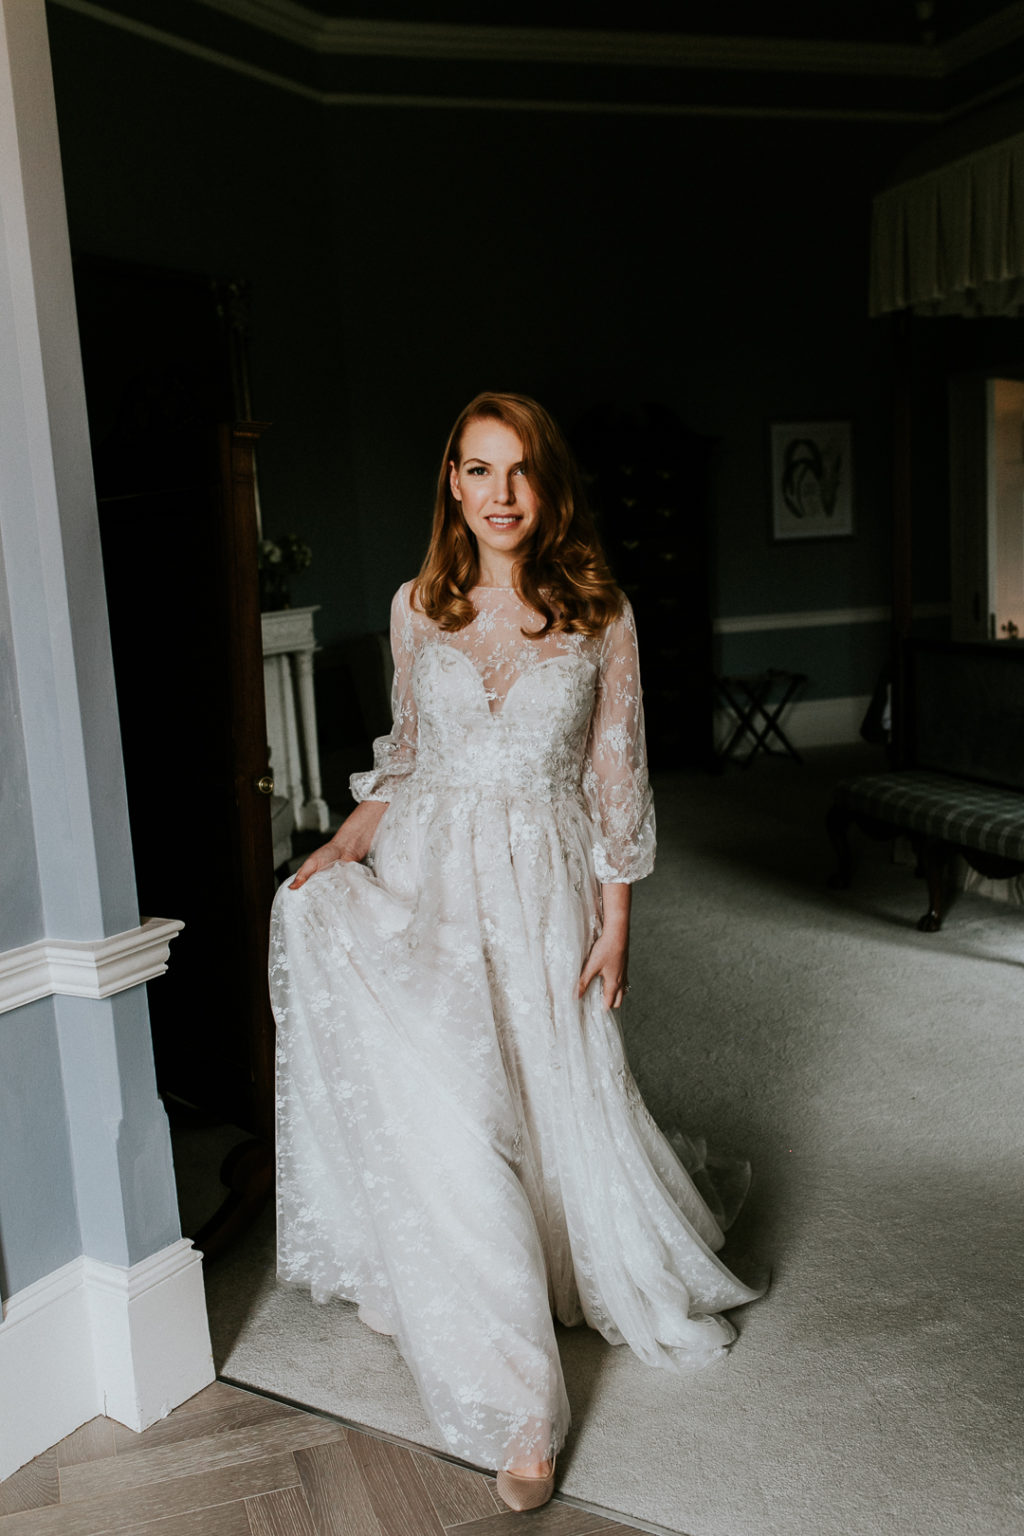 The bride was wearing a beautiful and romantic embellished A line wedding dress with balloon sleeves and an illusion neckline